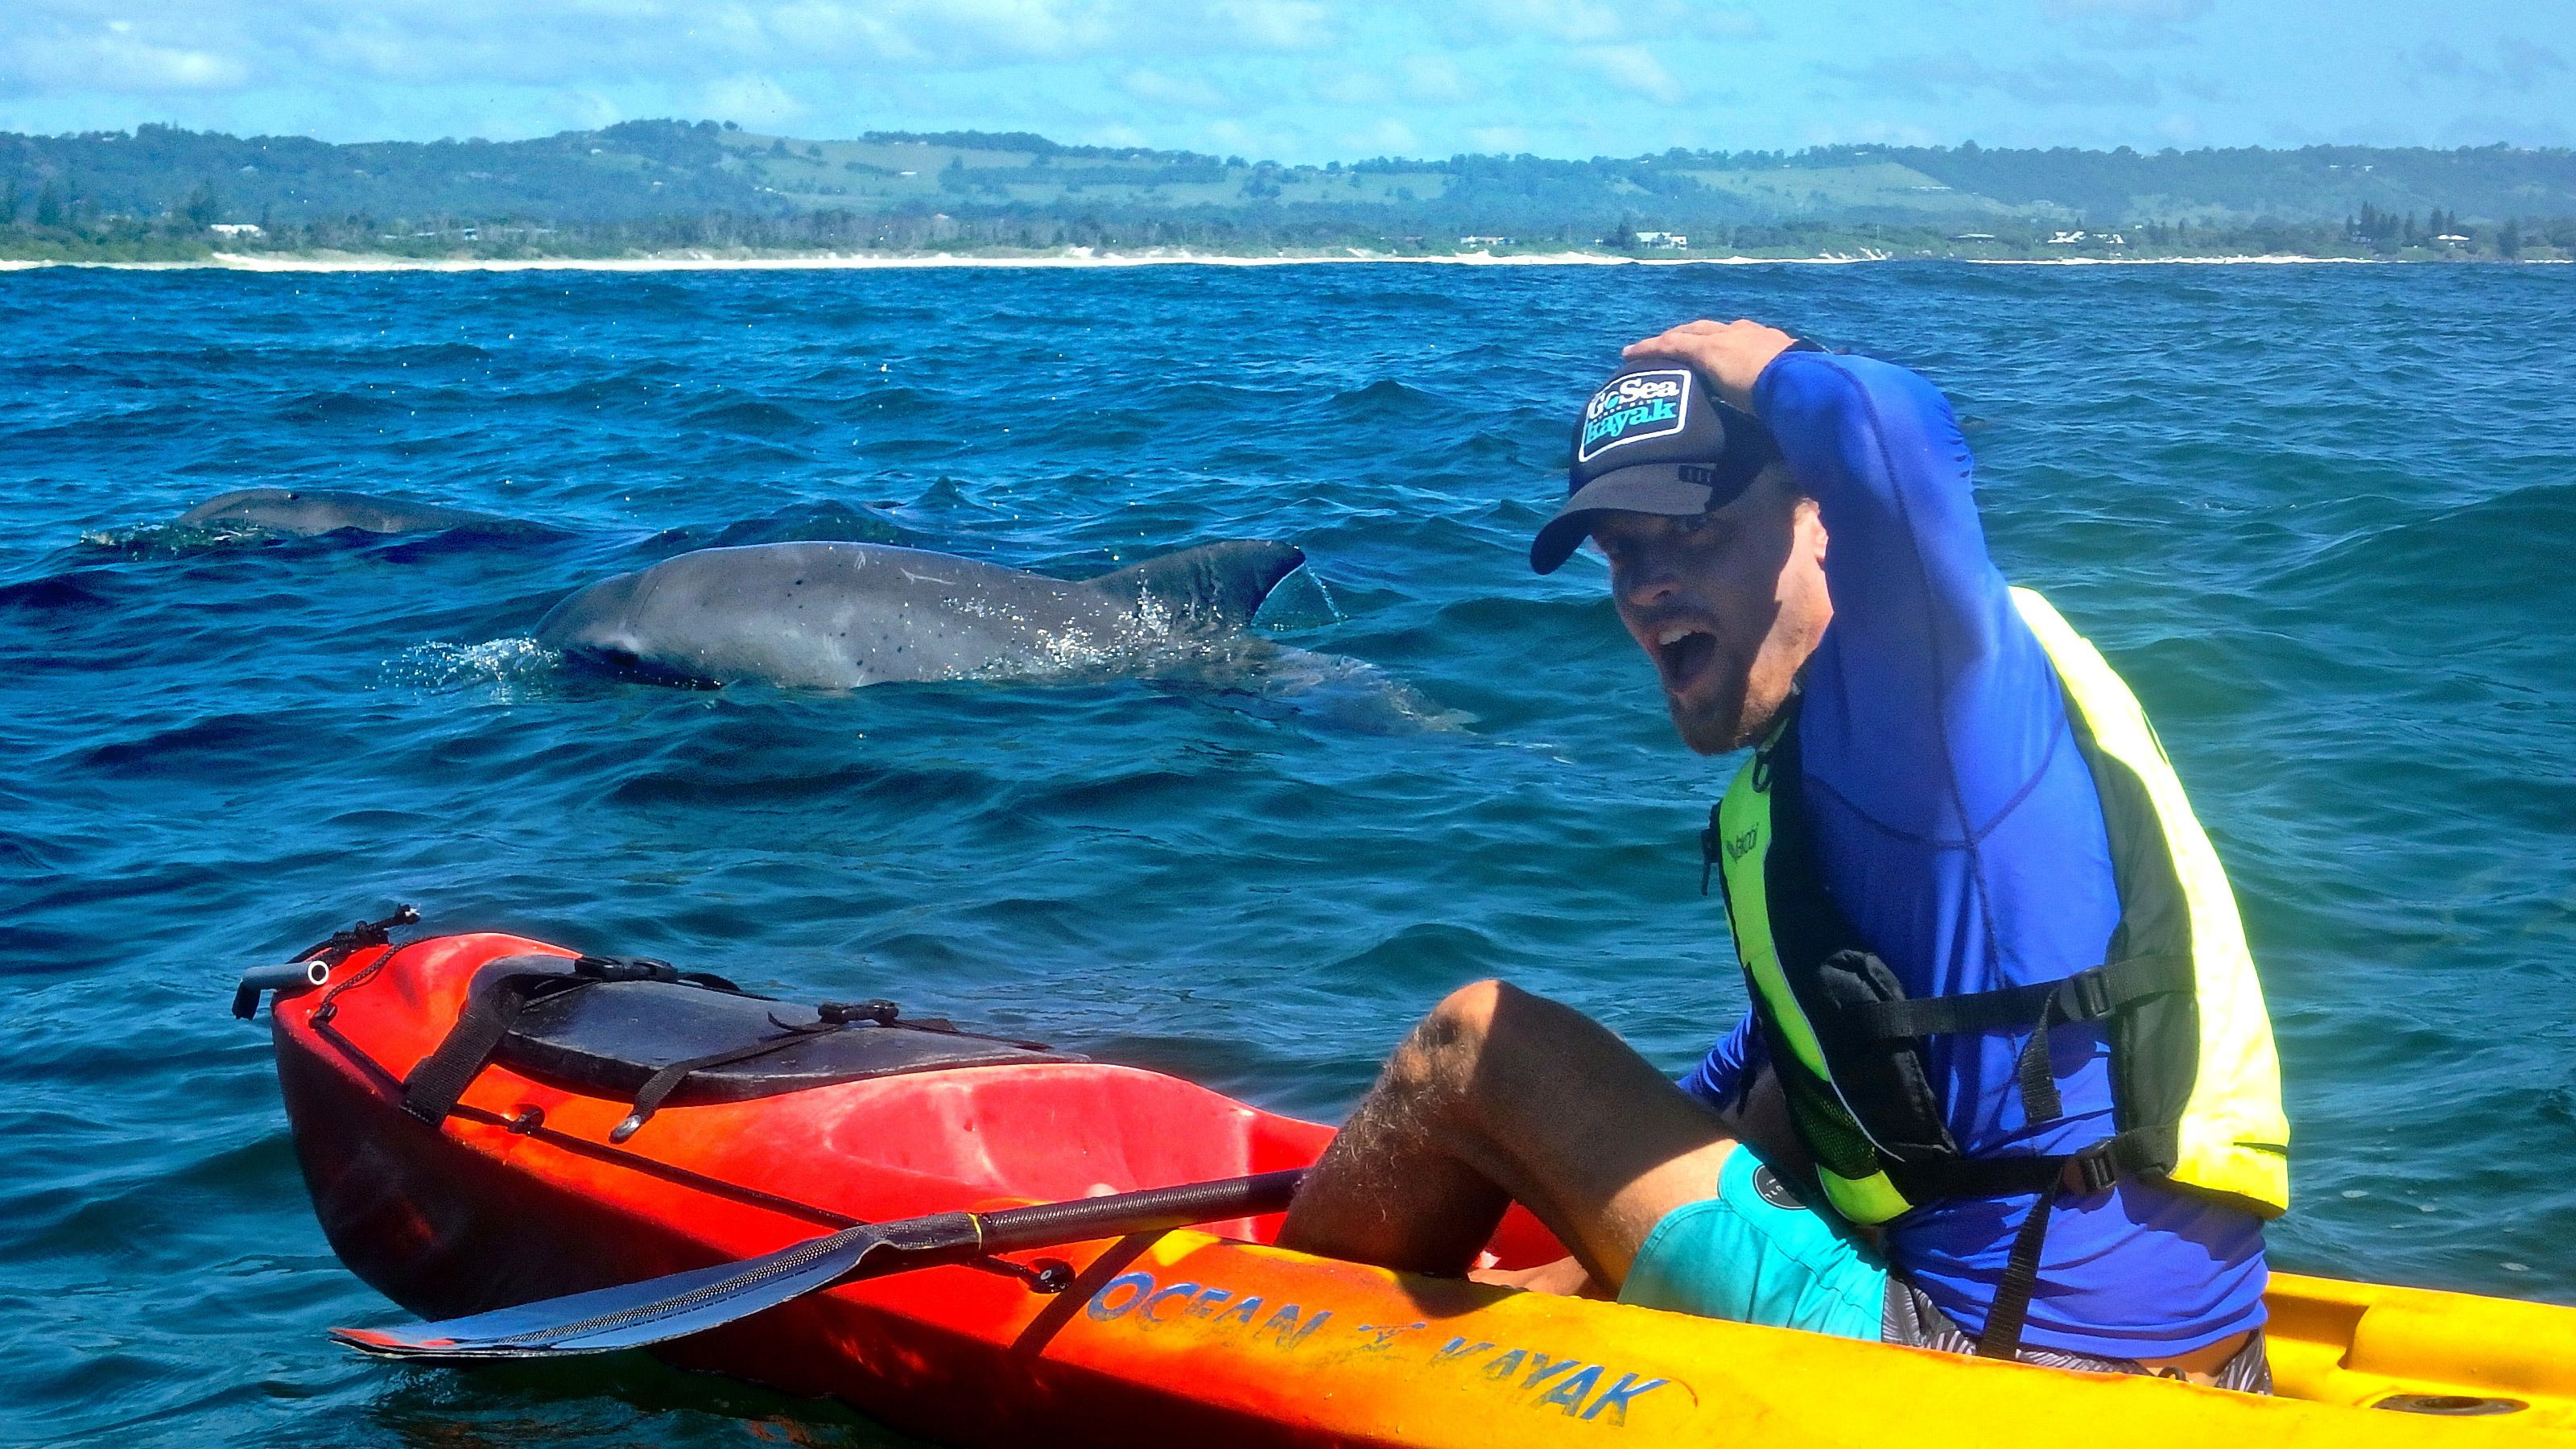 Man on a kayak with dolphins swimming nearby in Byron Bay